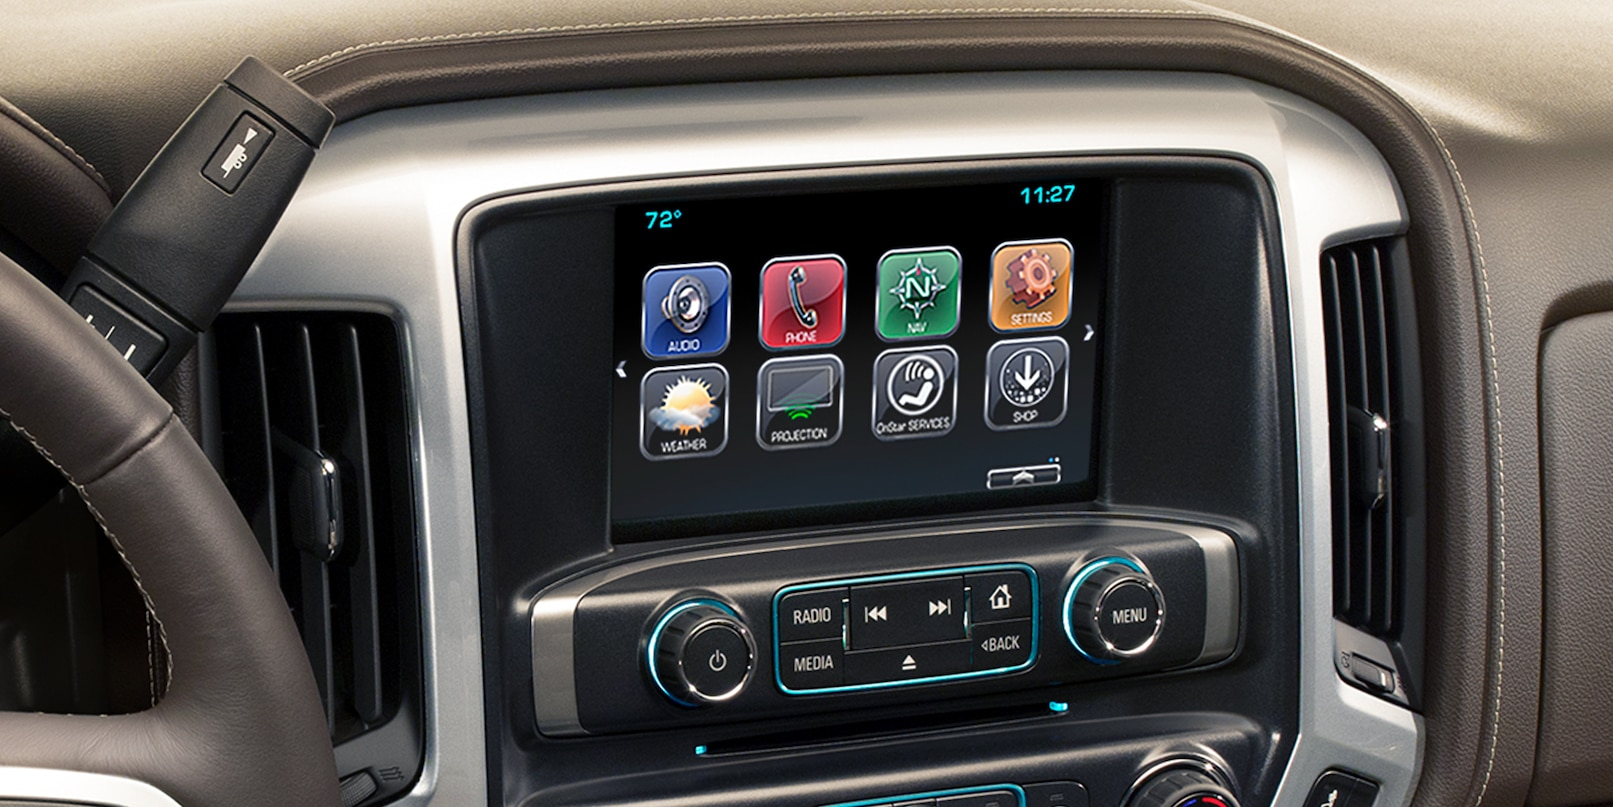 Silverado 1500 Touchscreen